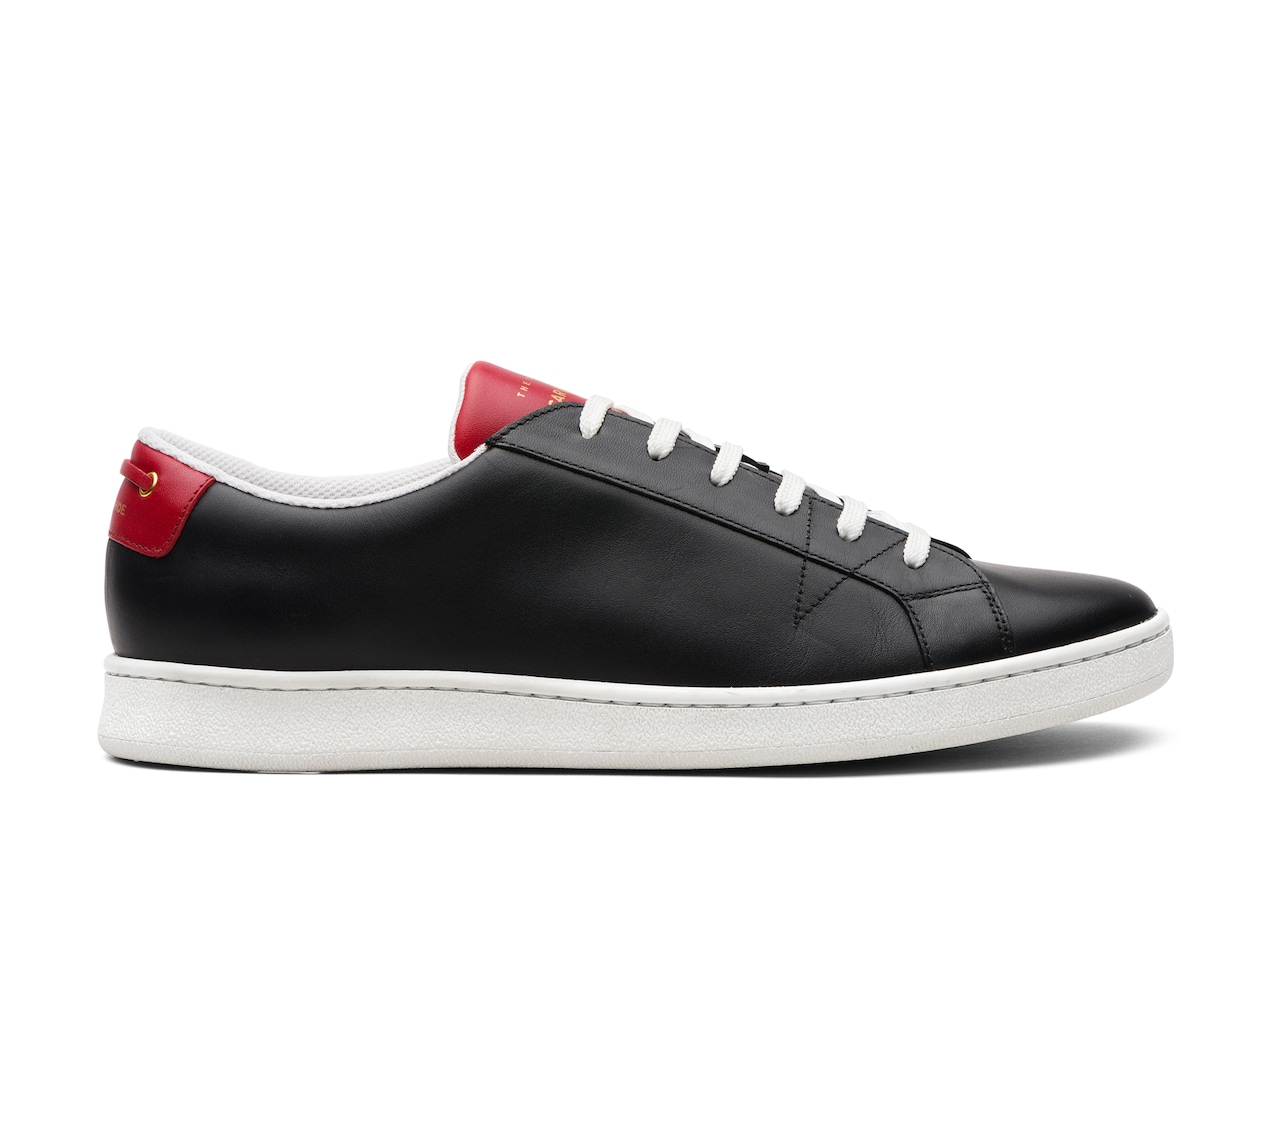 SNEAKERS CALF LEATHER BLACK